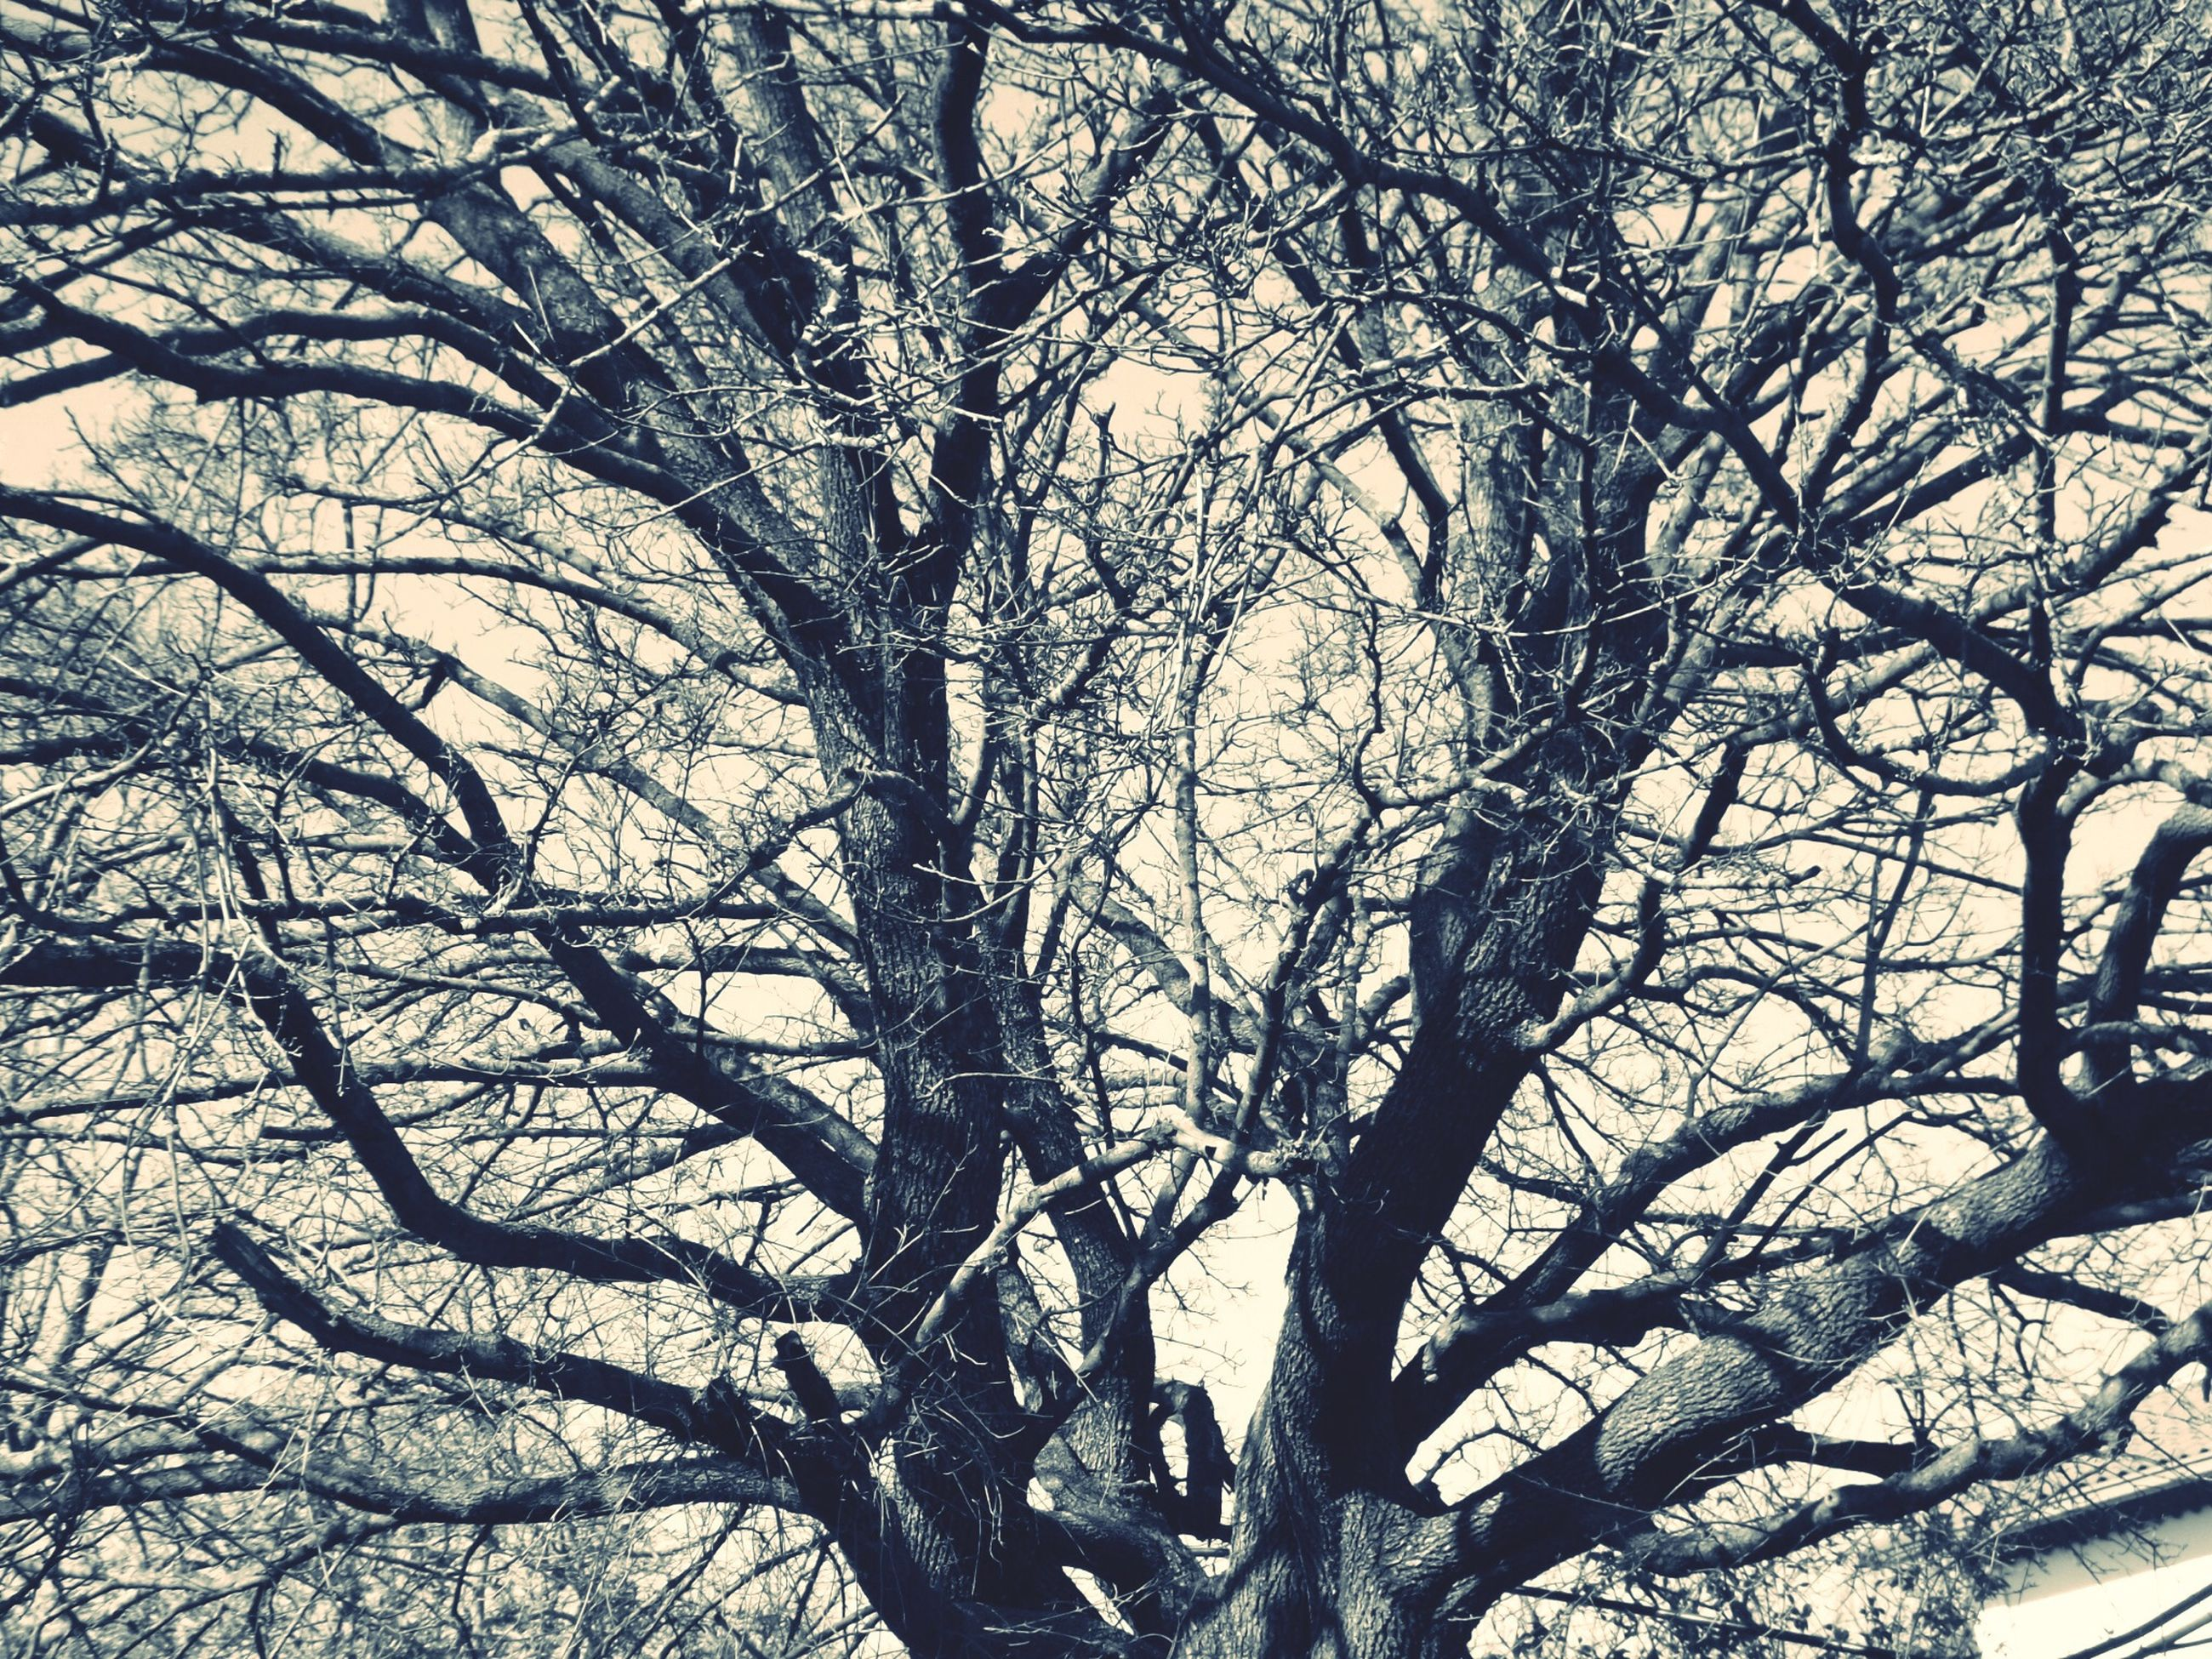 bare tree, branch, tree, low angle view, nature, silhouette, tranquility, tree trunk, sky, beauty in nature, outdoors, no people, backgrounds, full frame, day, growth, scenics, dead plant, dried plant, tranquil scene